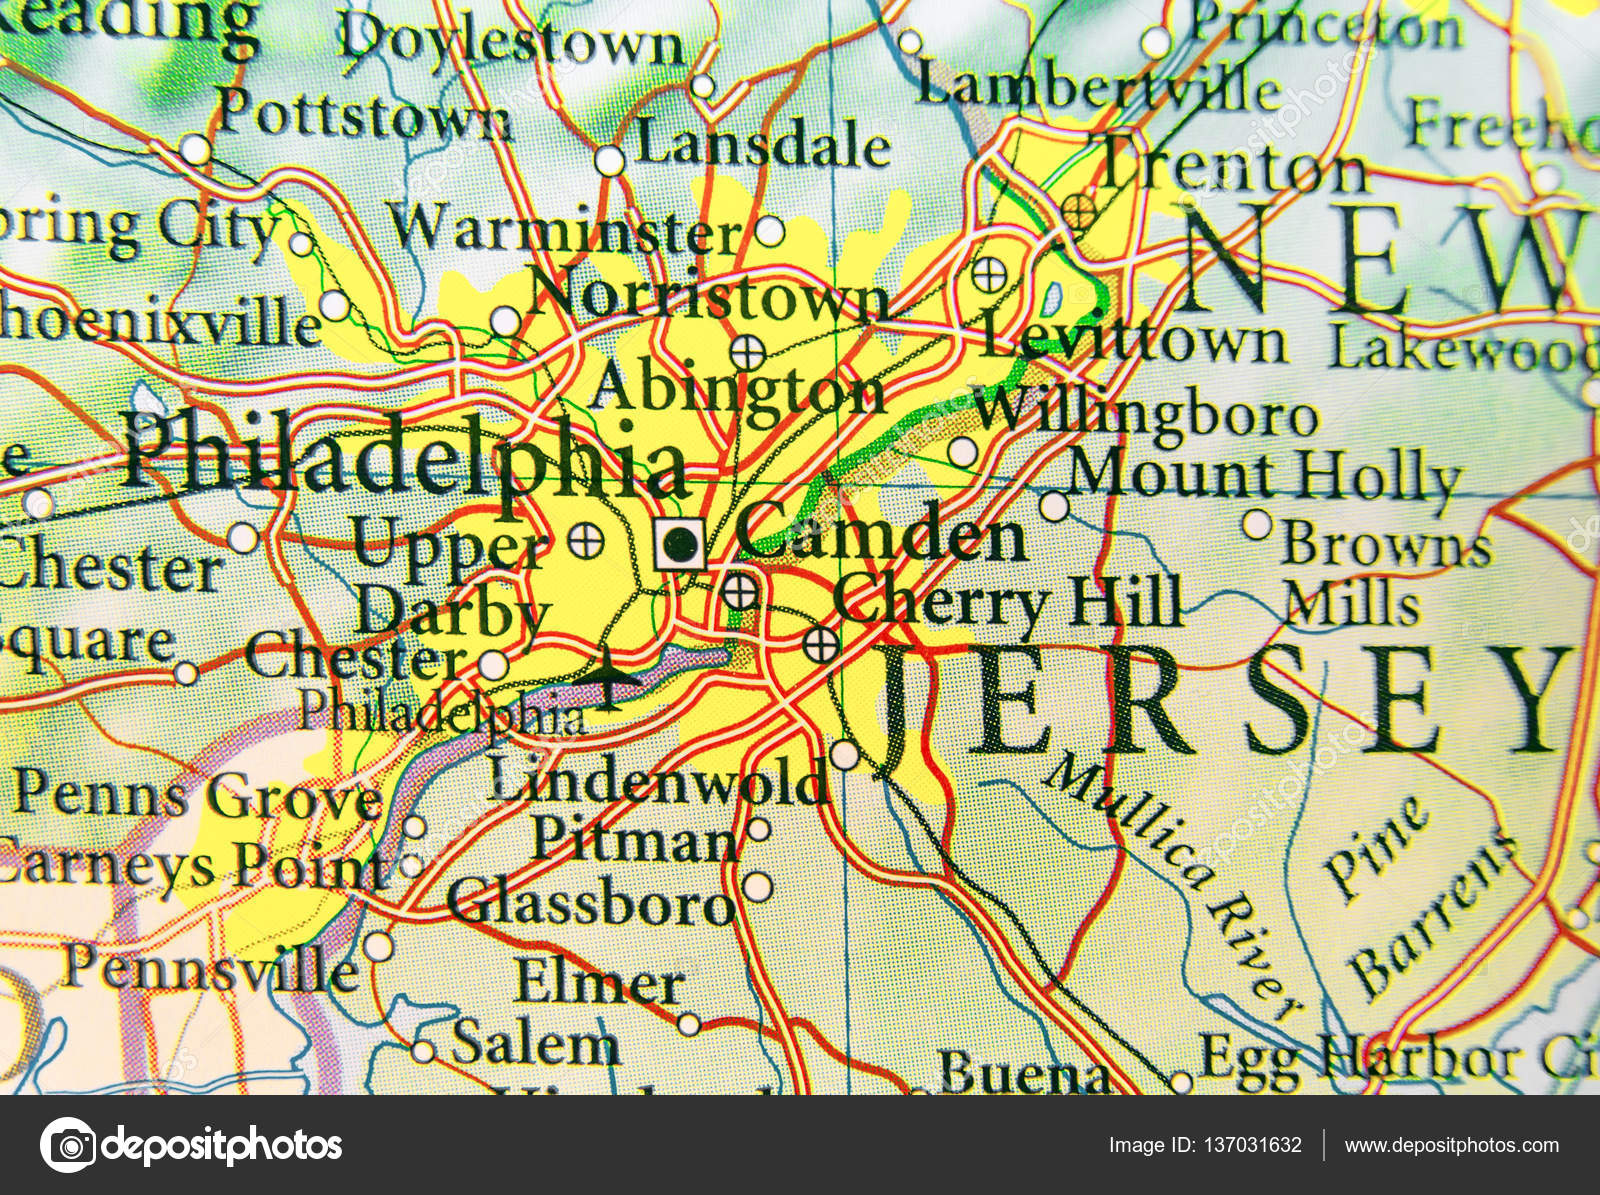 Philadelphia On Map Of Us.Geographic Map Of Us City Philadelphia And Other Important Citie